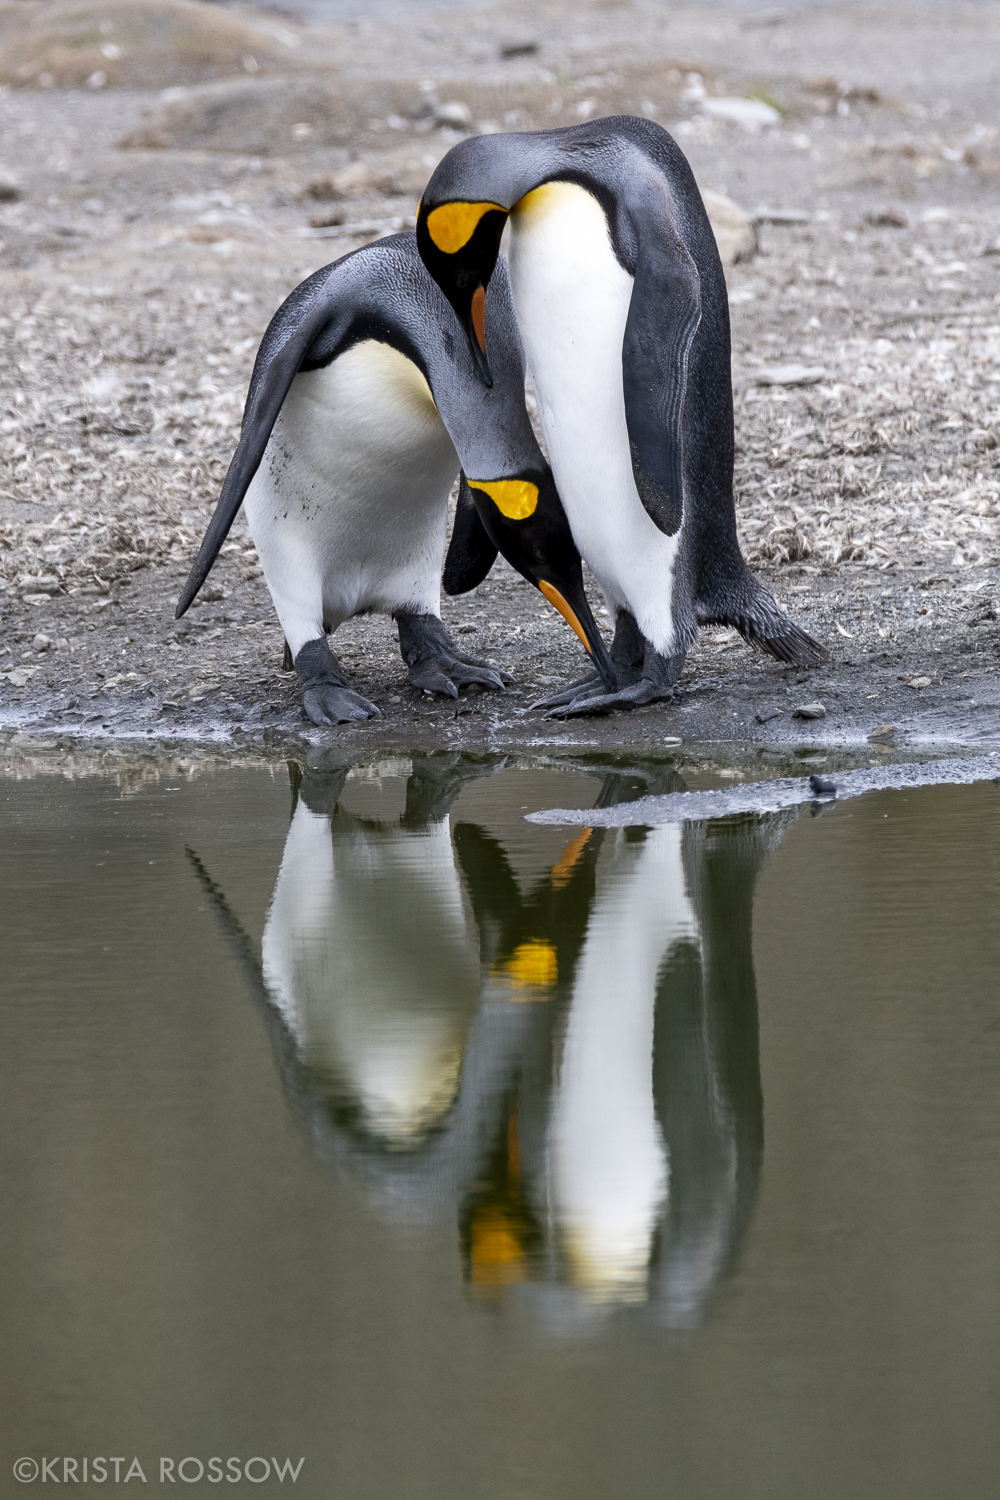 11-Krista-Rossow-South-Georgia-king-penguin-love